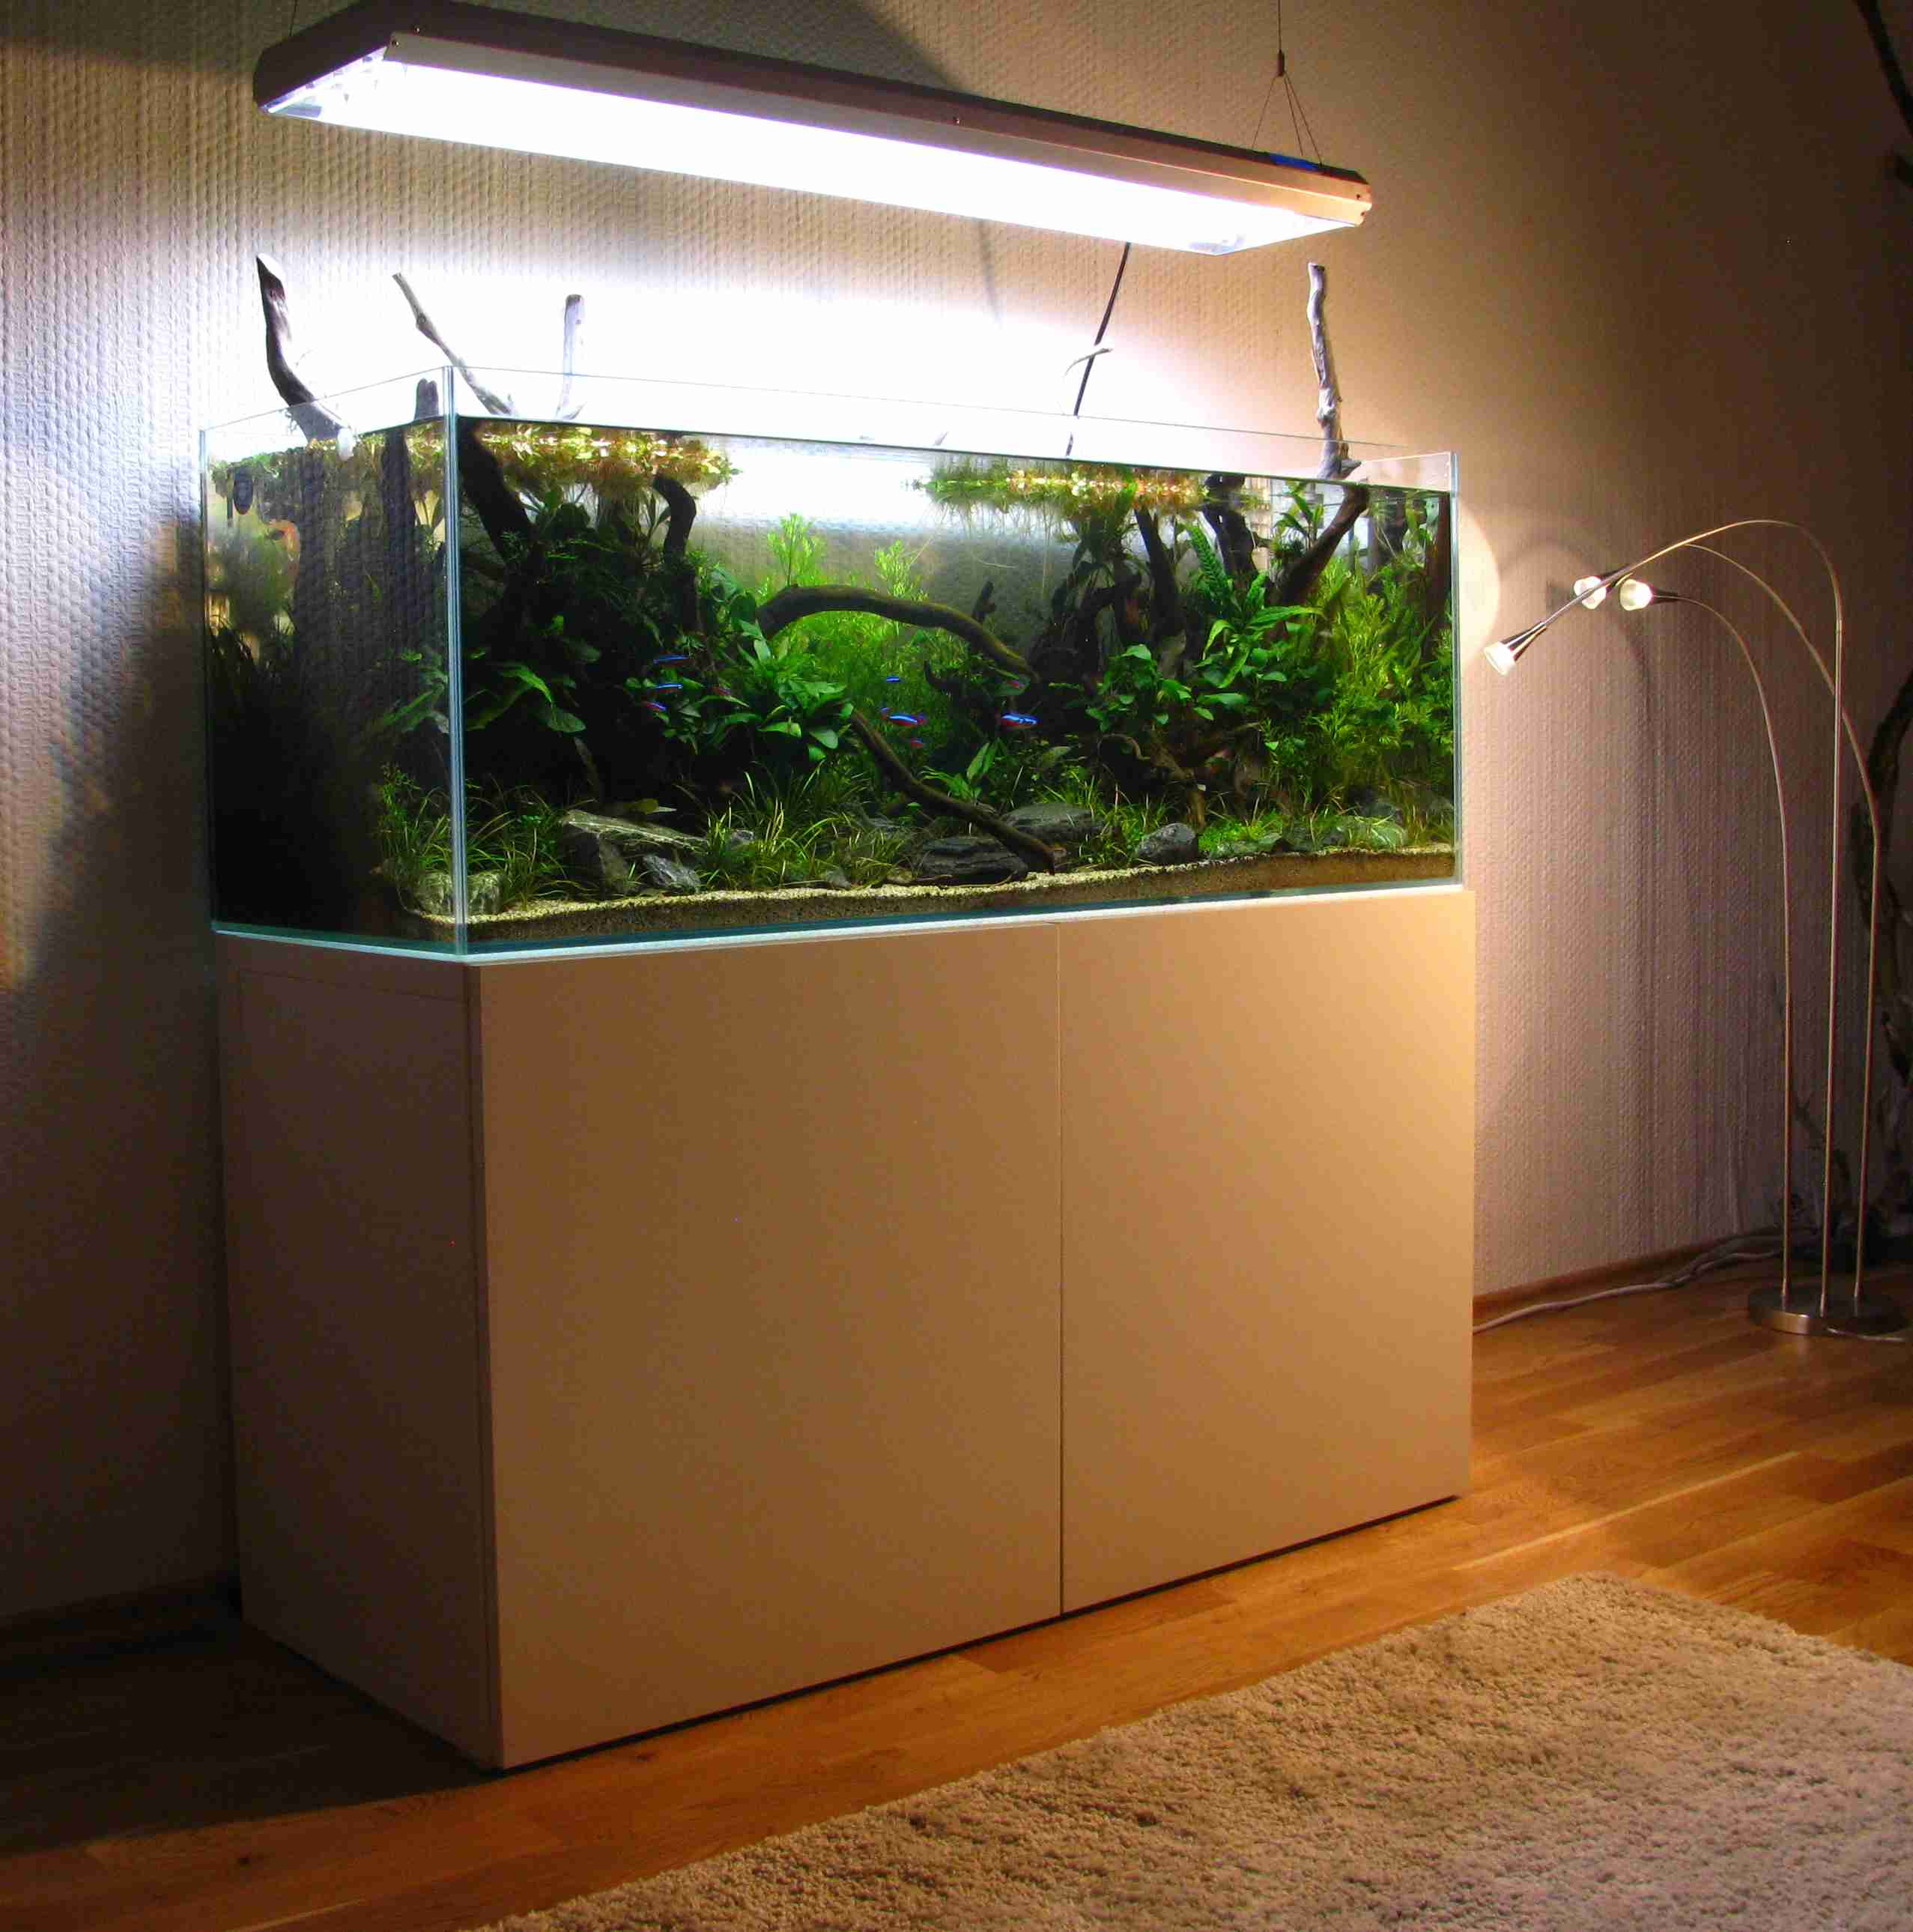 aquarium schrank ikea birke. Black Bedroom Furniture Sets. Home Design Ideas